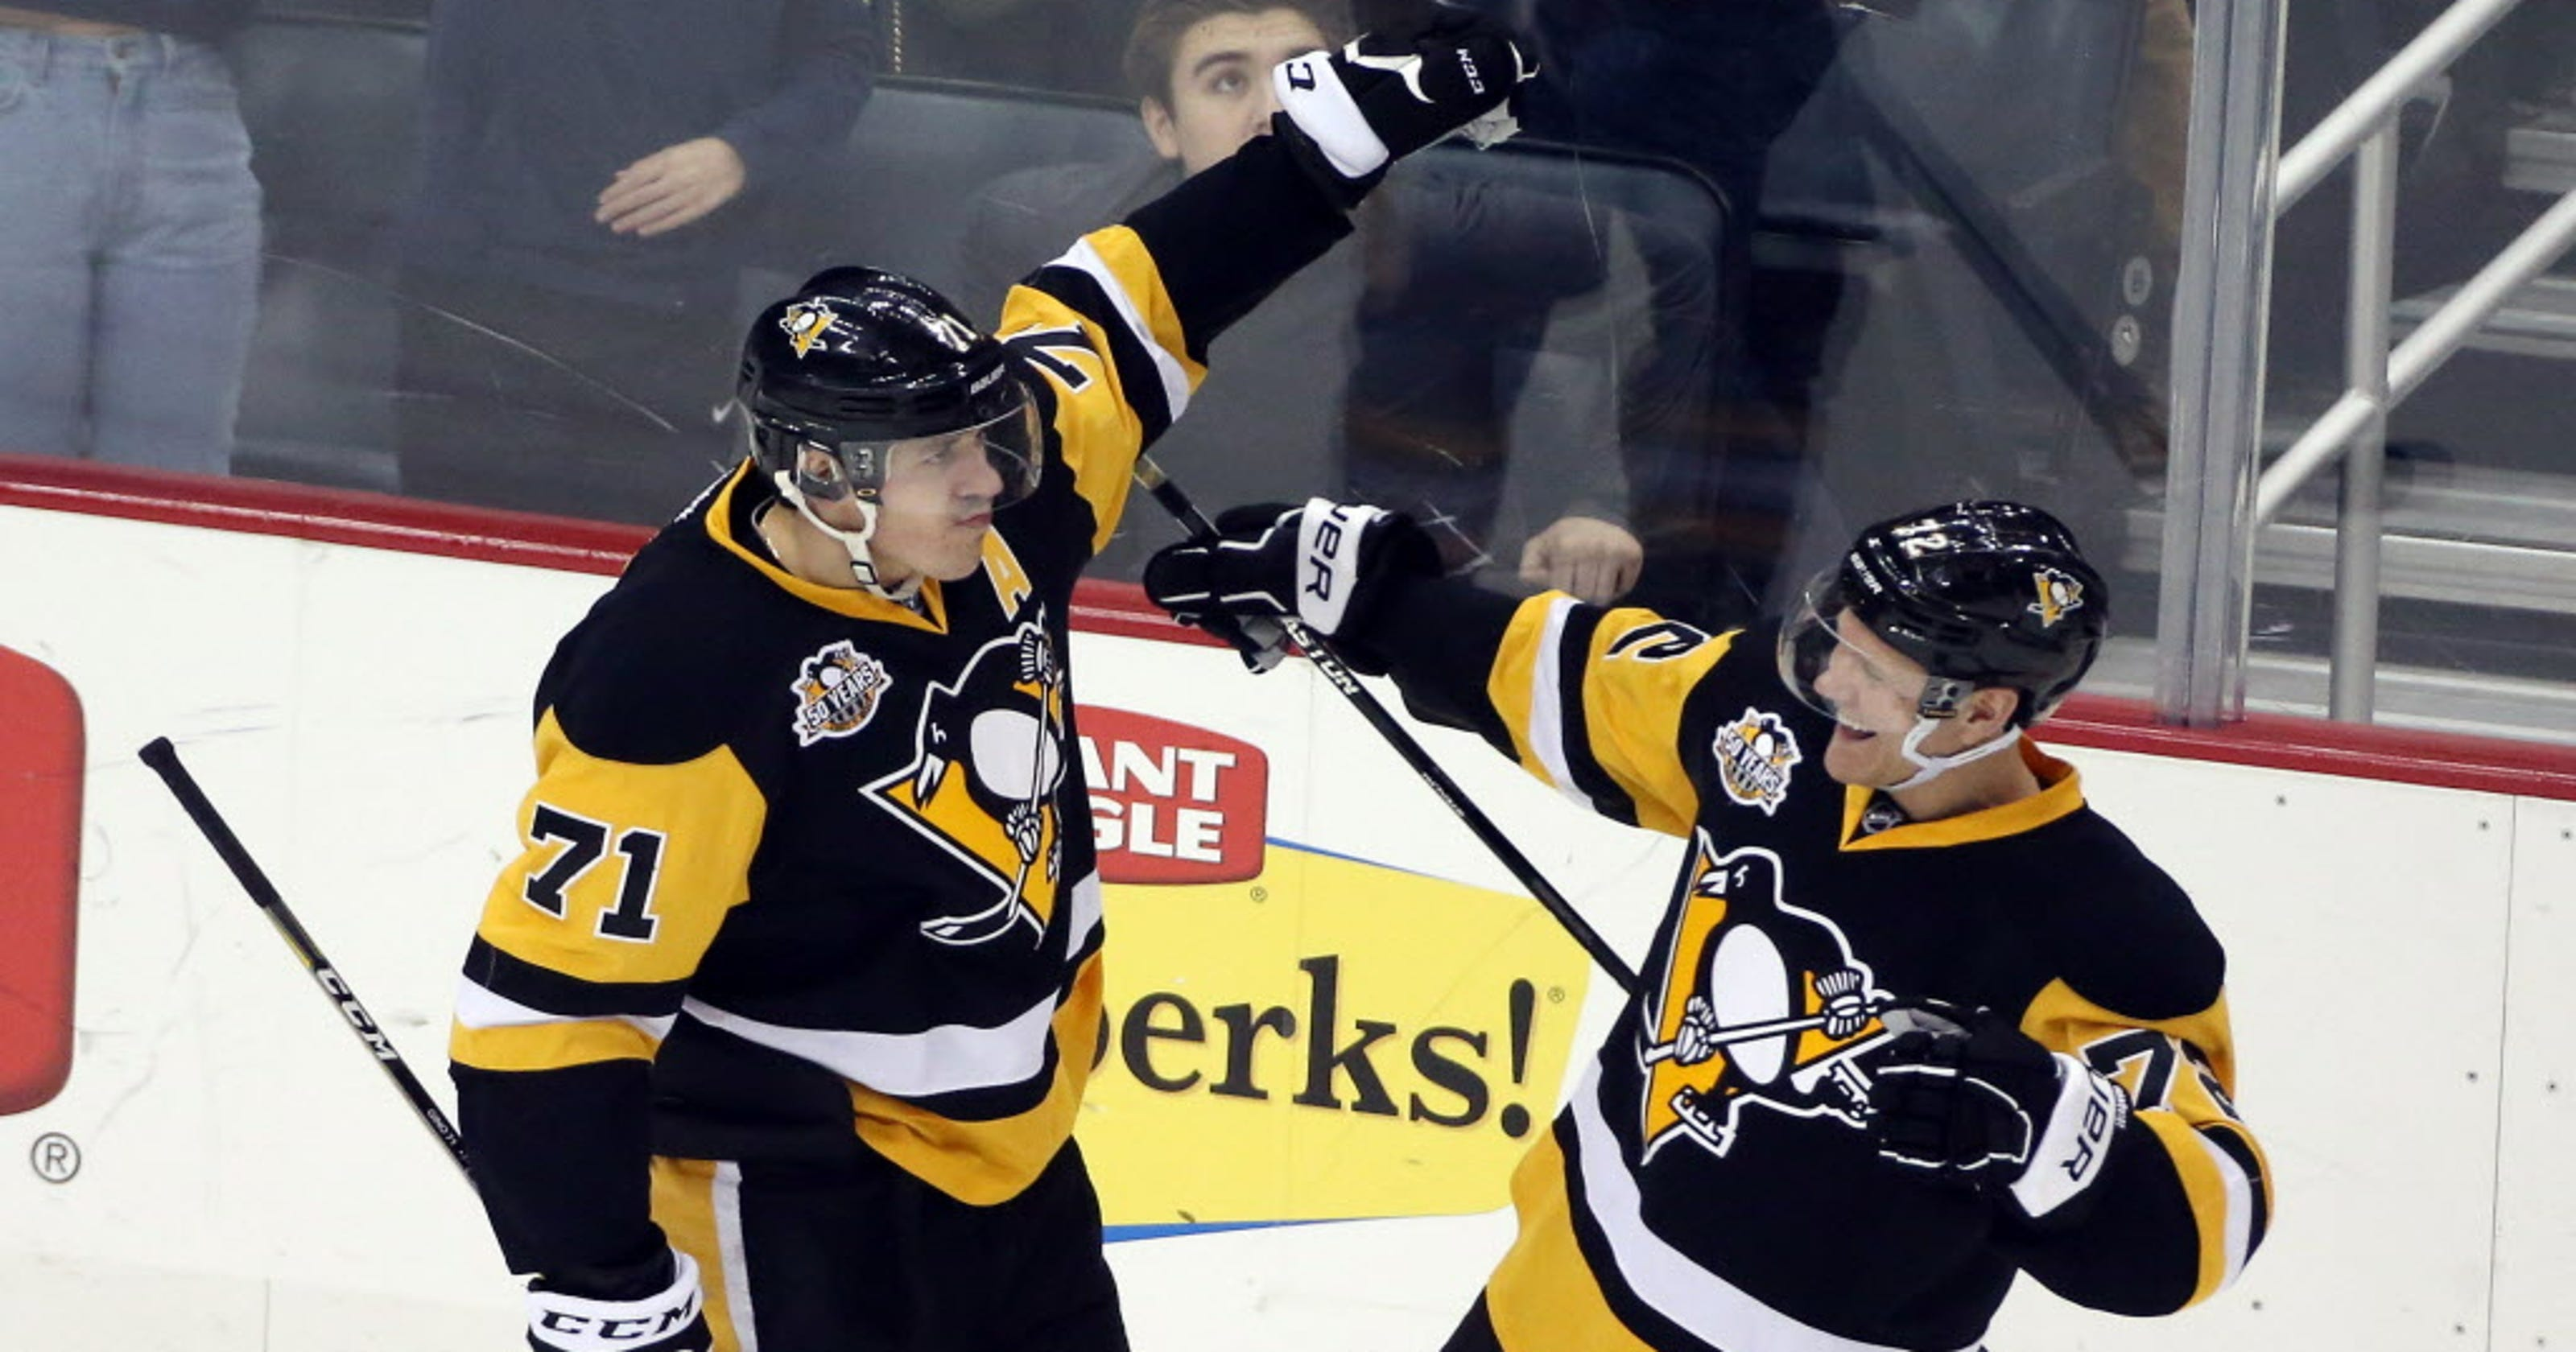 41bd7d898d0 Evgeni Malkin completes Penguins' rally past Canadiens in OT